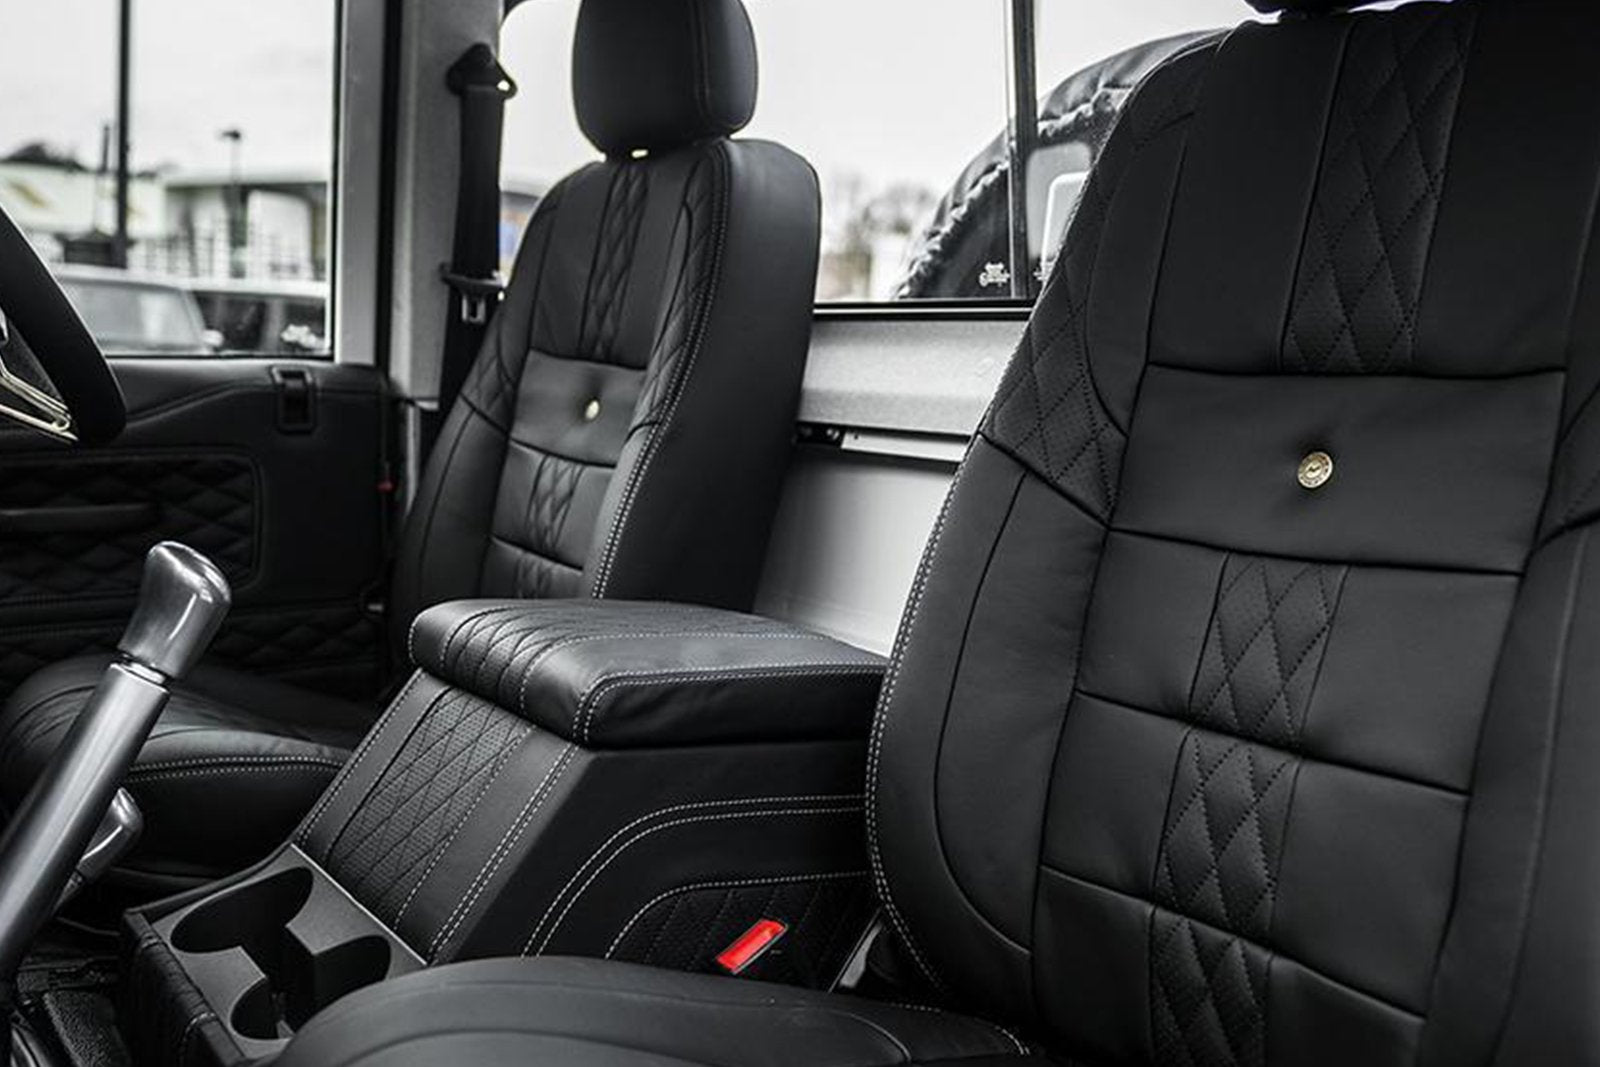 LAND ROVER DEFENDER 110 (1991-2016) PICKUP COMFORT INTERIOR - 2 SEATS